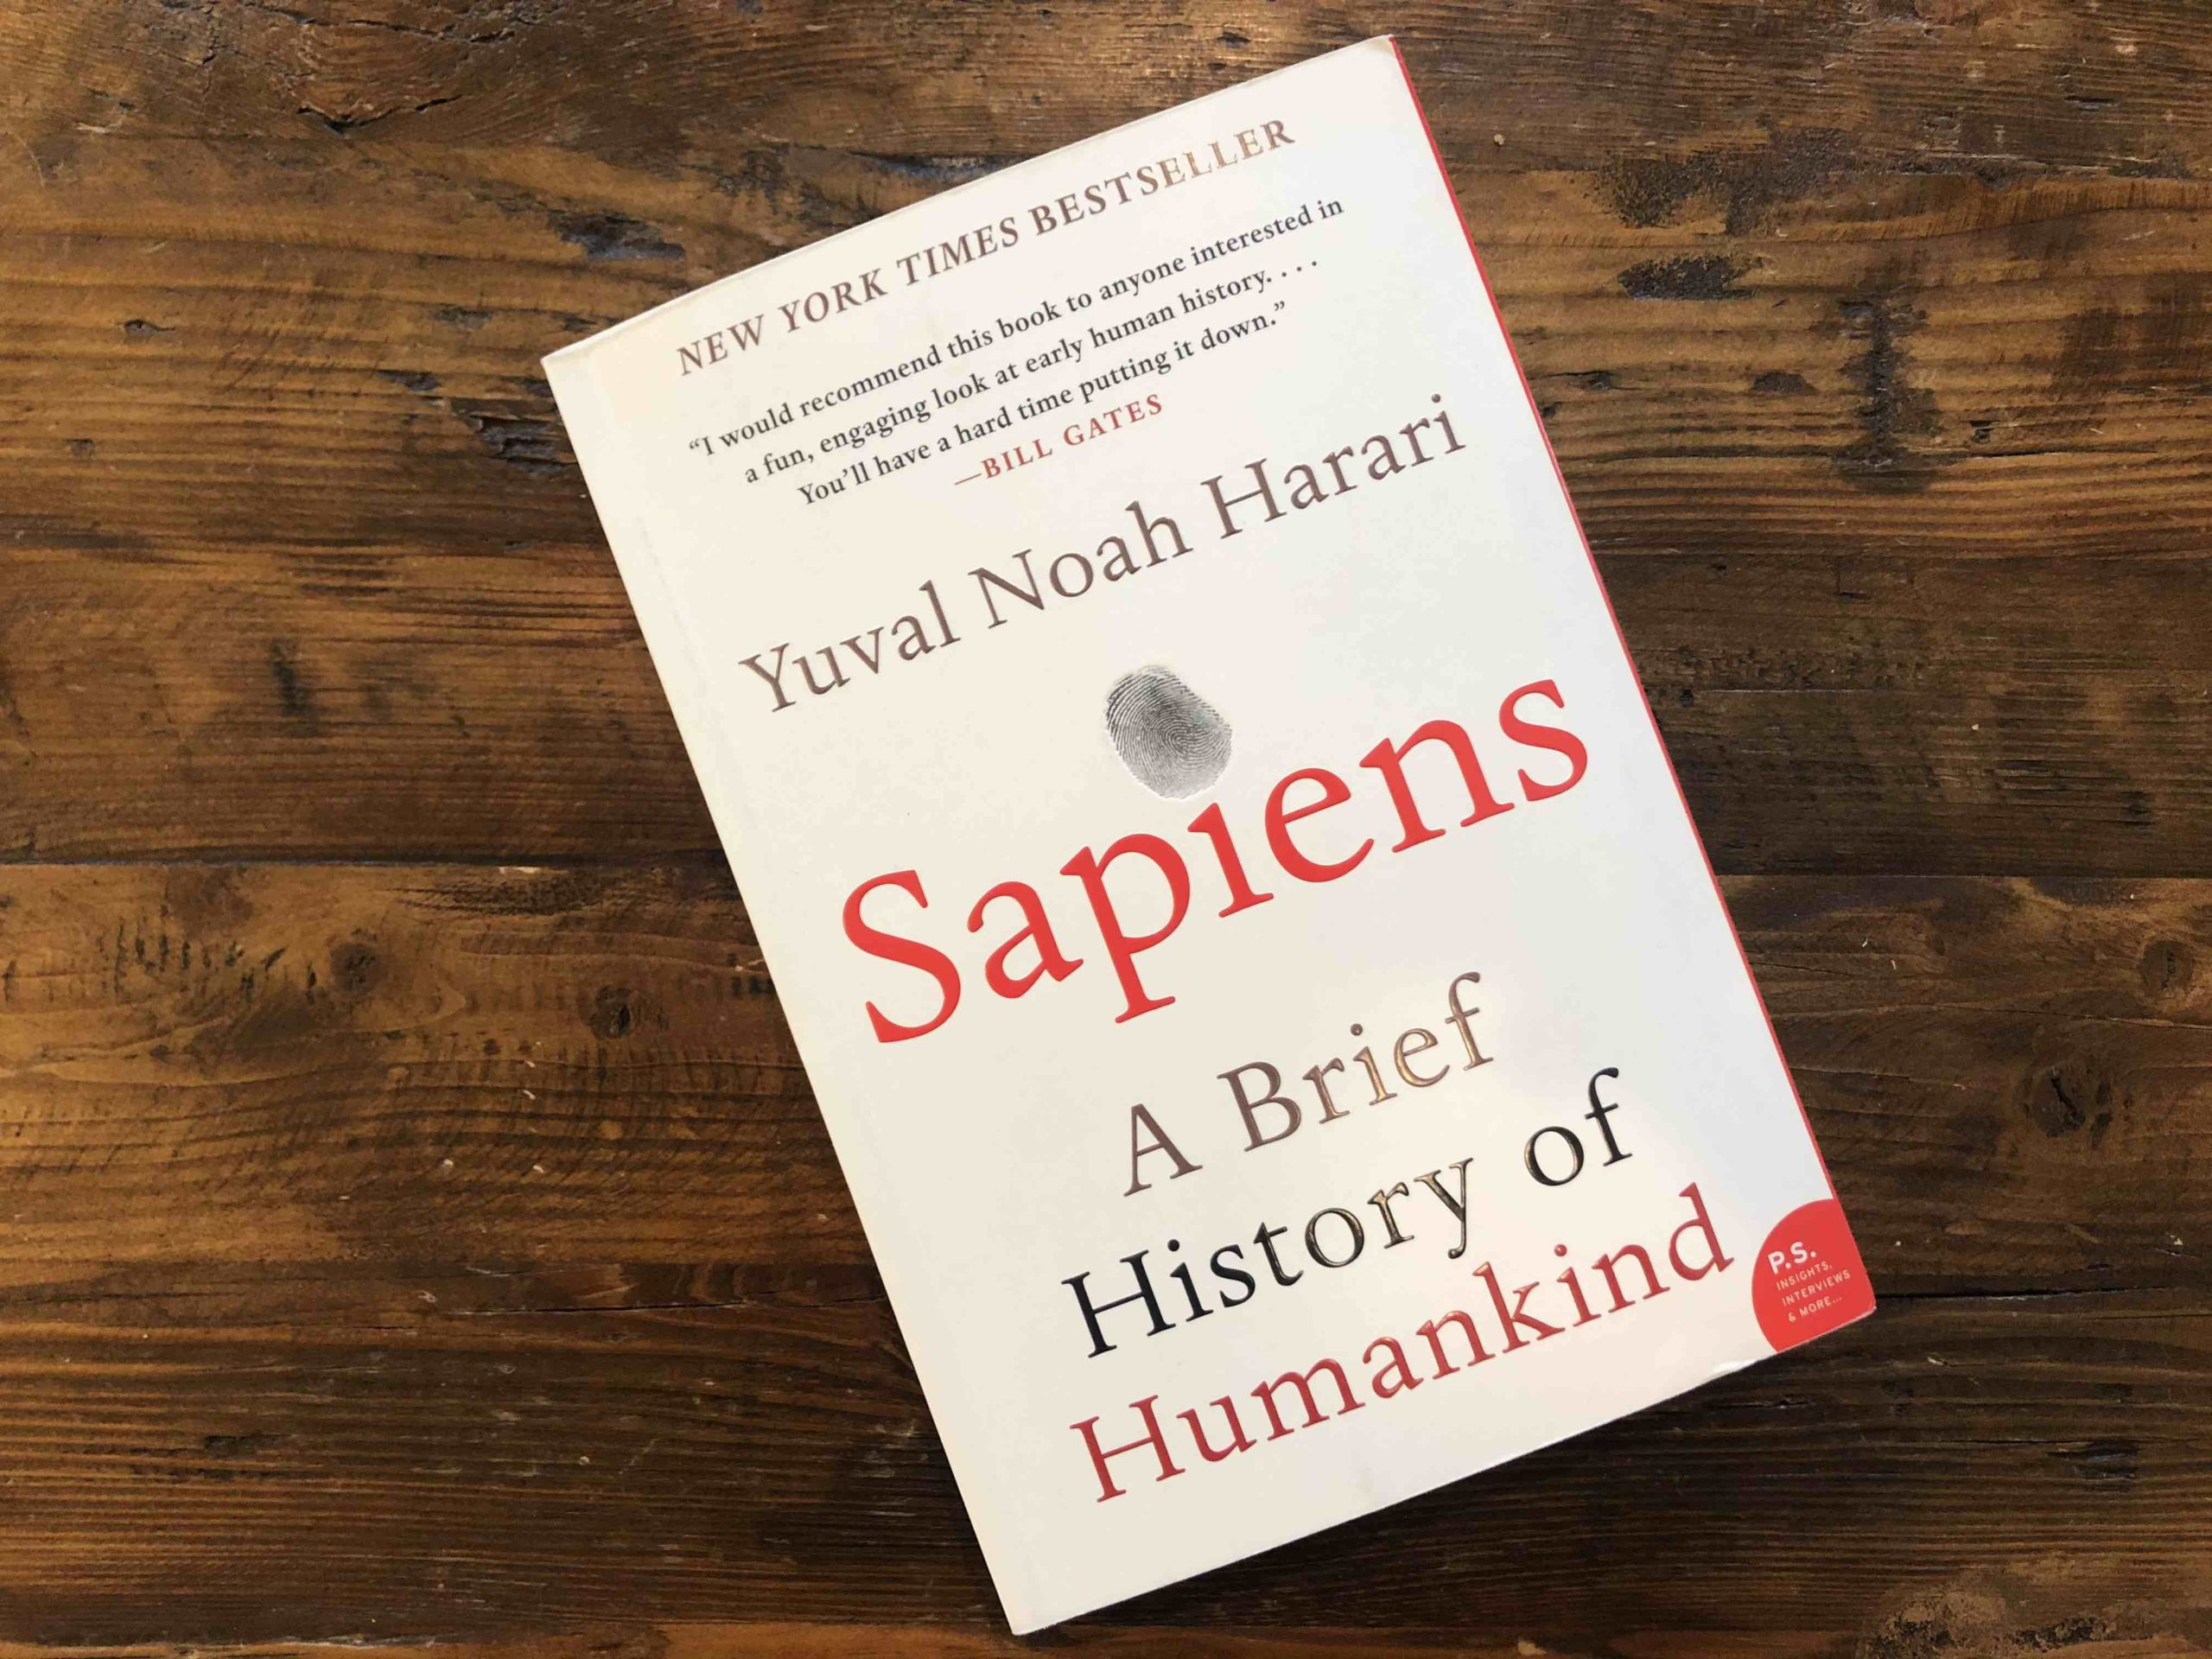 The book Sapiens sitting on a wood coffee table